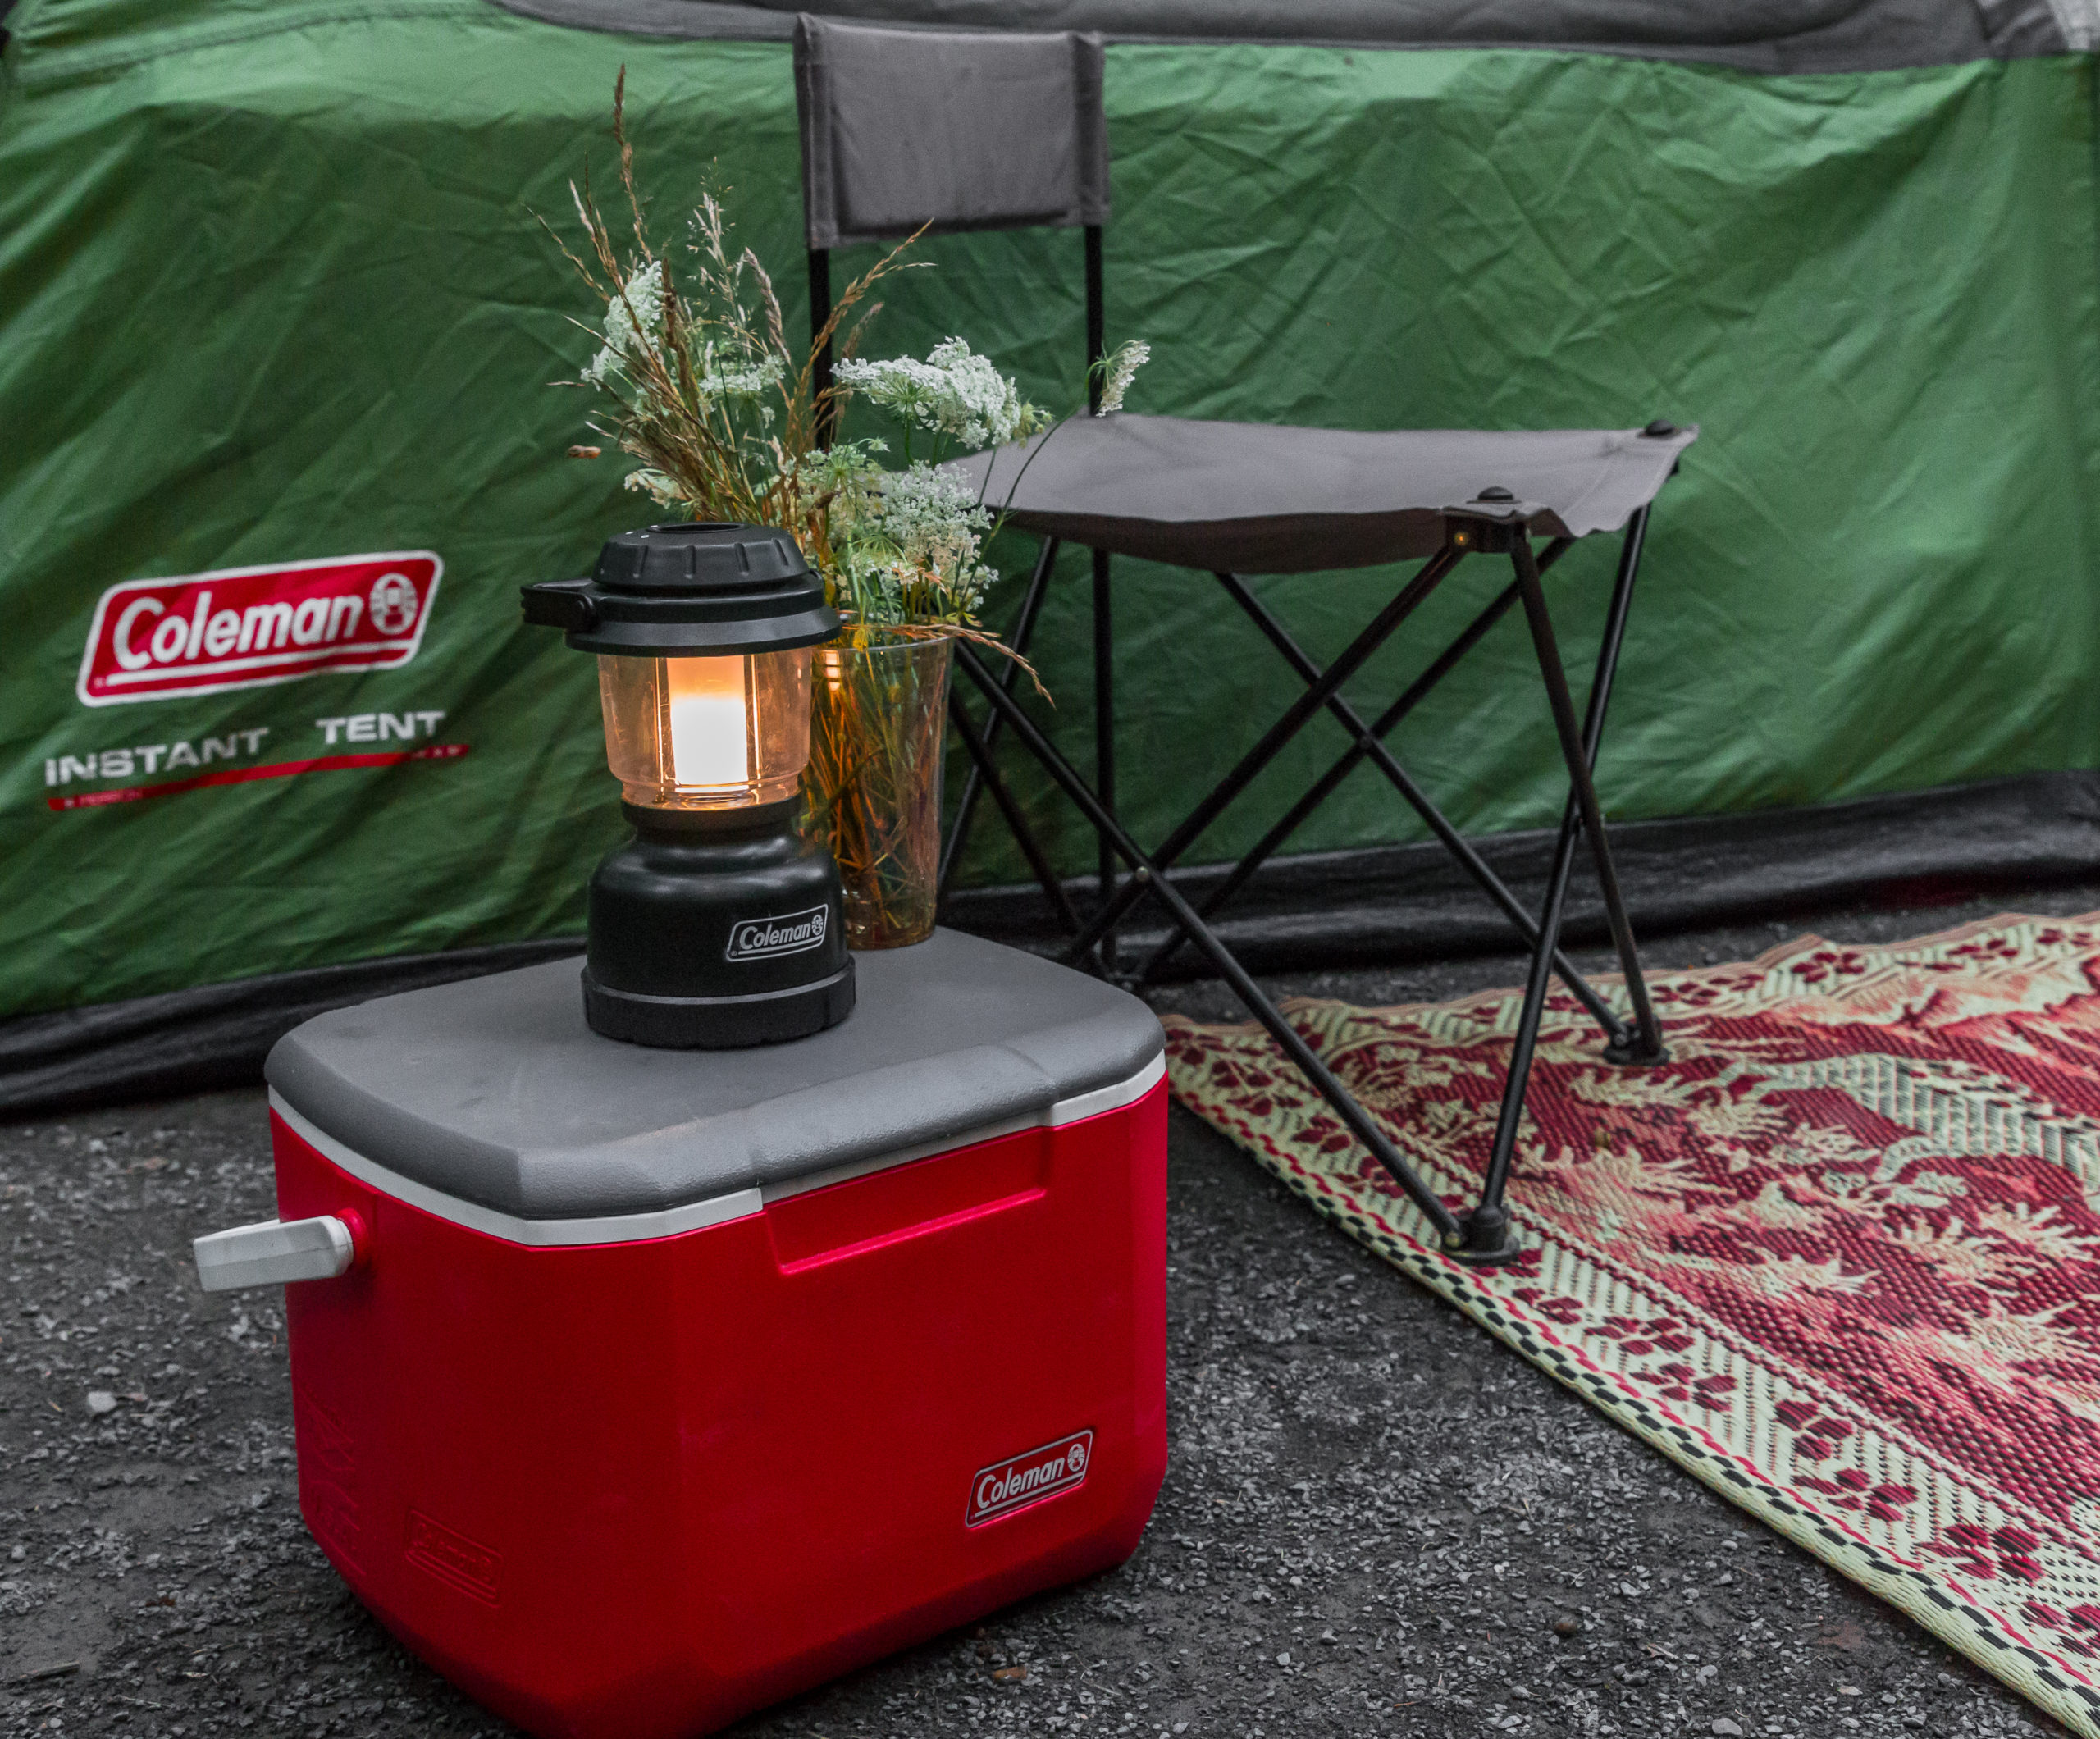 How to Glamp: 7 essentials for making your tent more luxurious